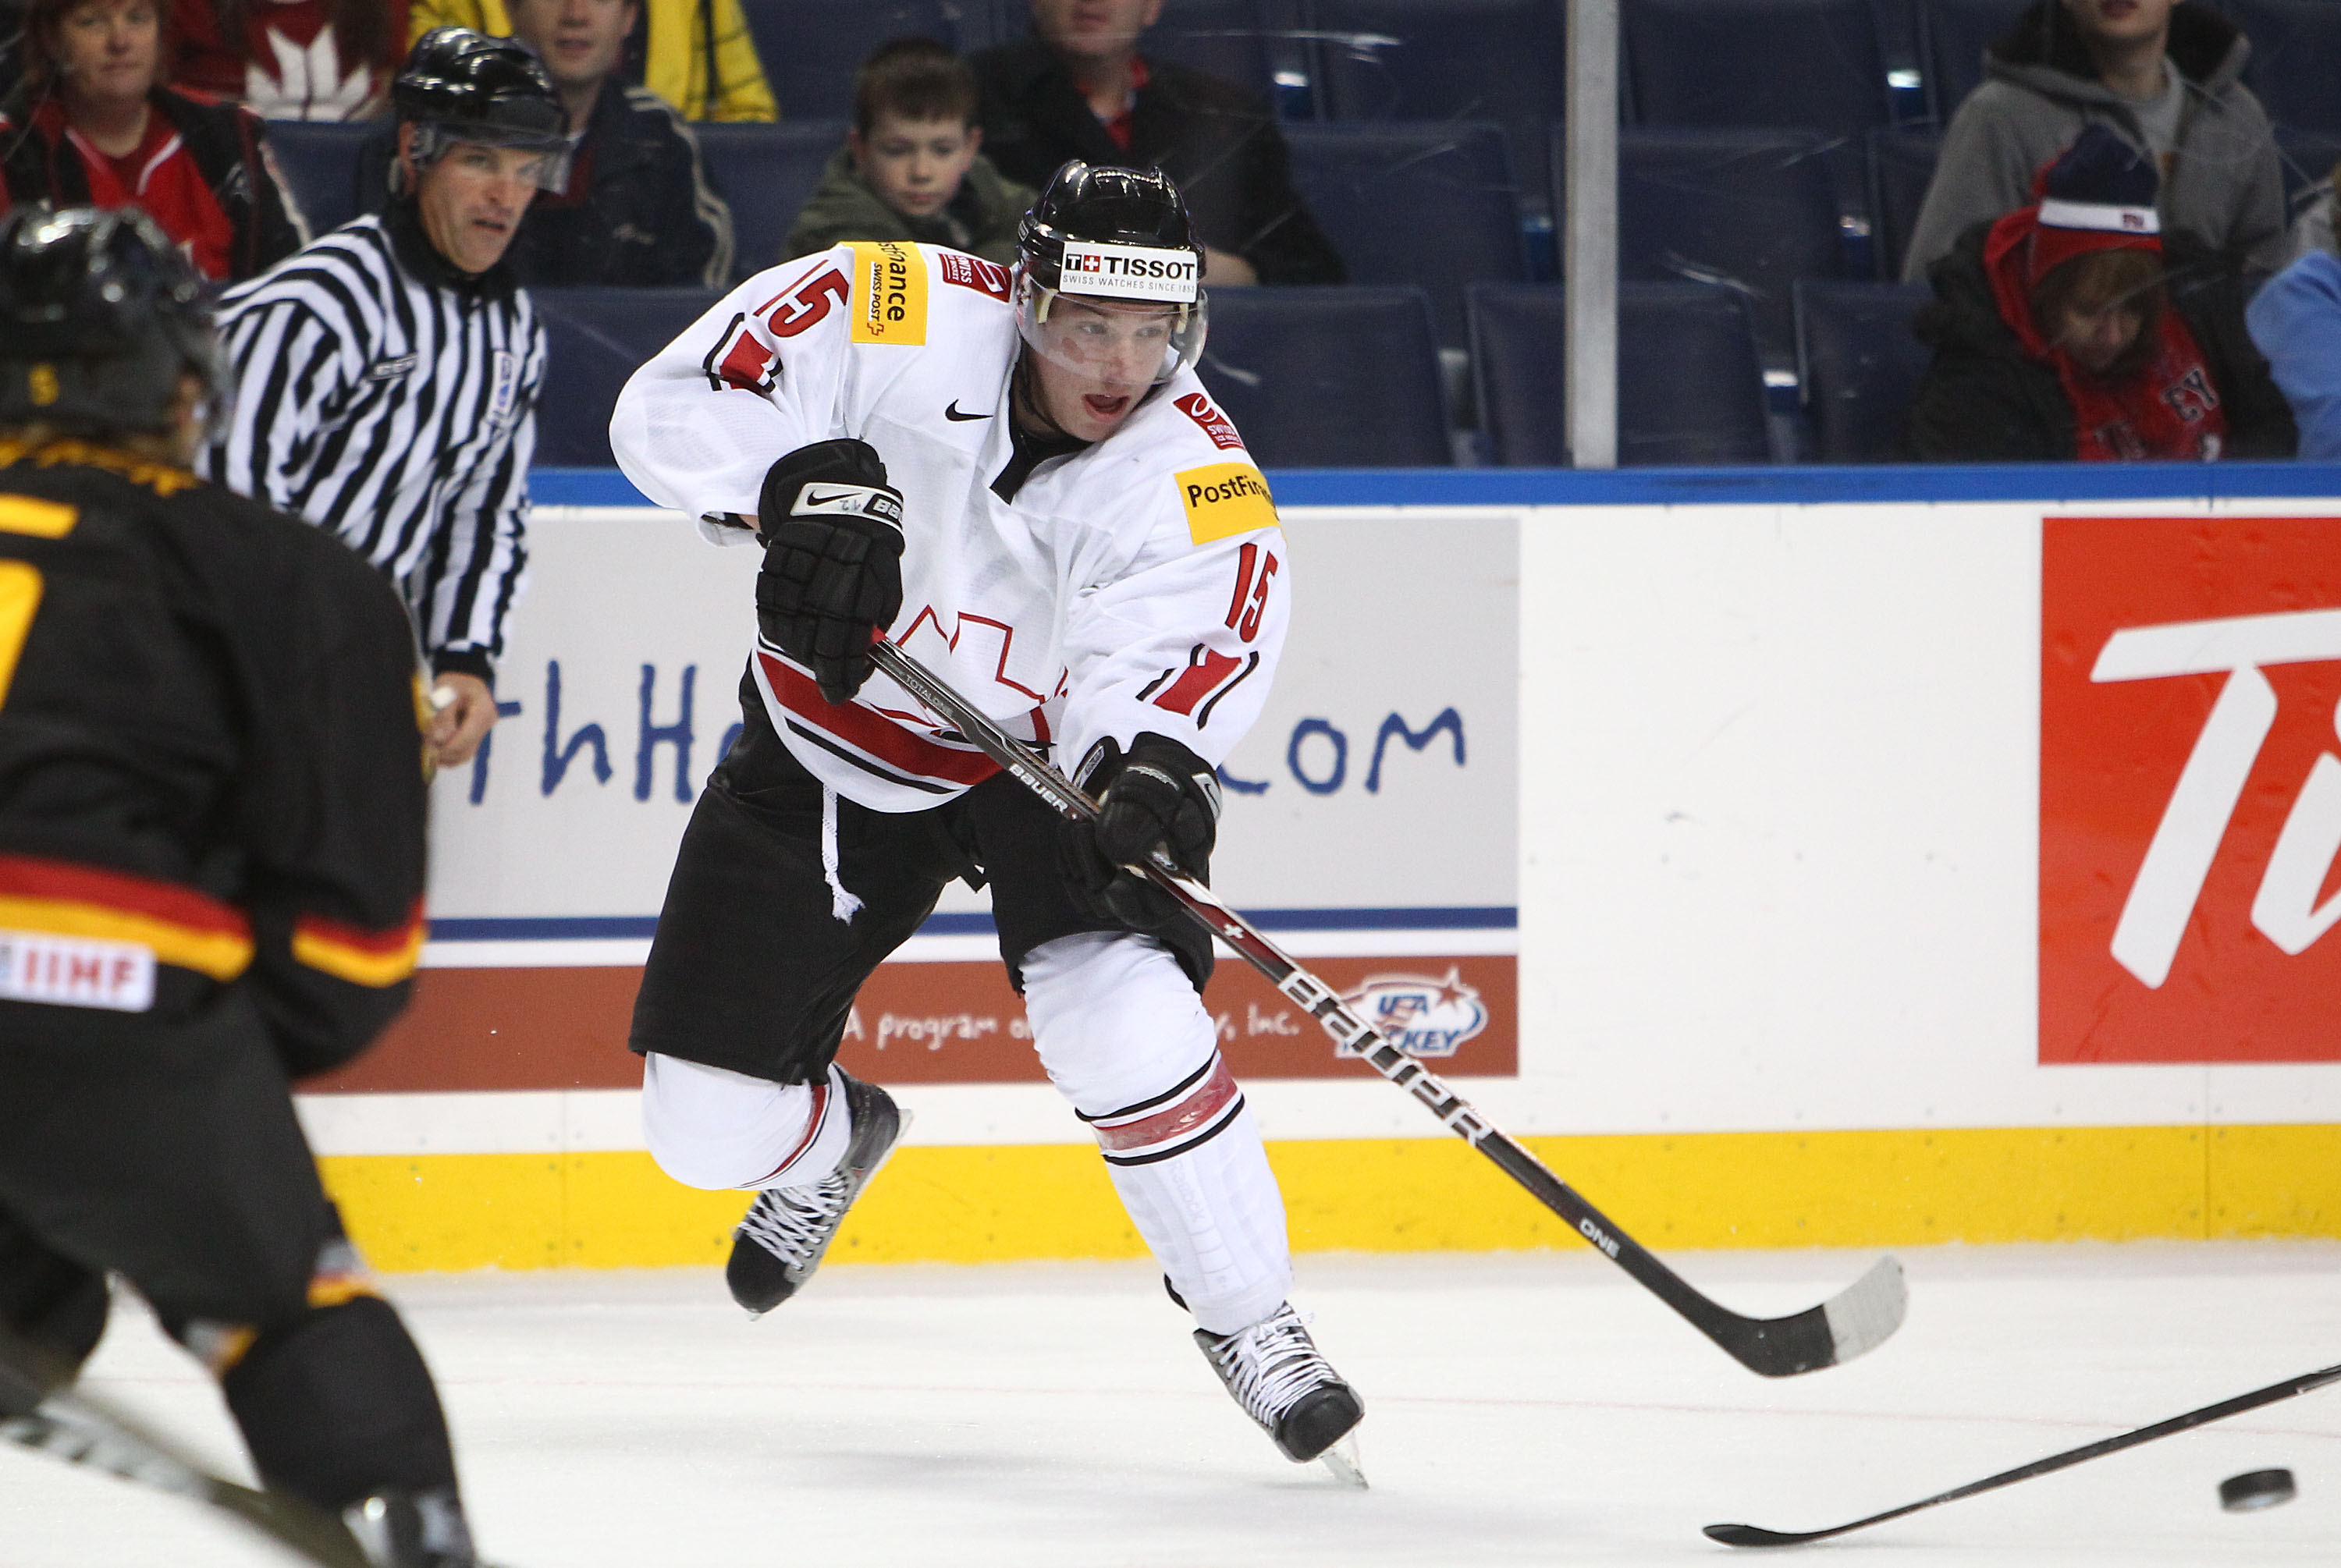 BUFFALO, NY - DECEMBER 26:  Sven Bartschi #15 of Switzerland passes the puck during the 2011 IIHF World U20 Championship Group A game between Germany and Switzerland on December 26, 2010 at HSBC Arena in Buffalo, New York. (Photo by Tom Szczerbowski/Getty